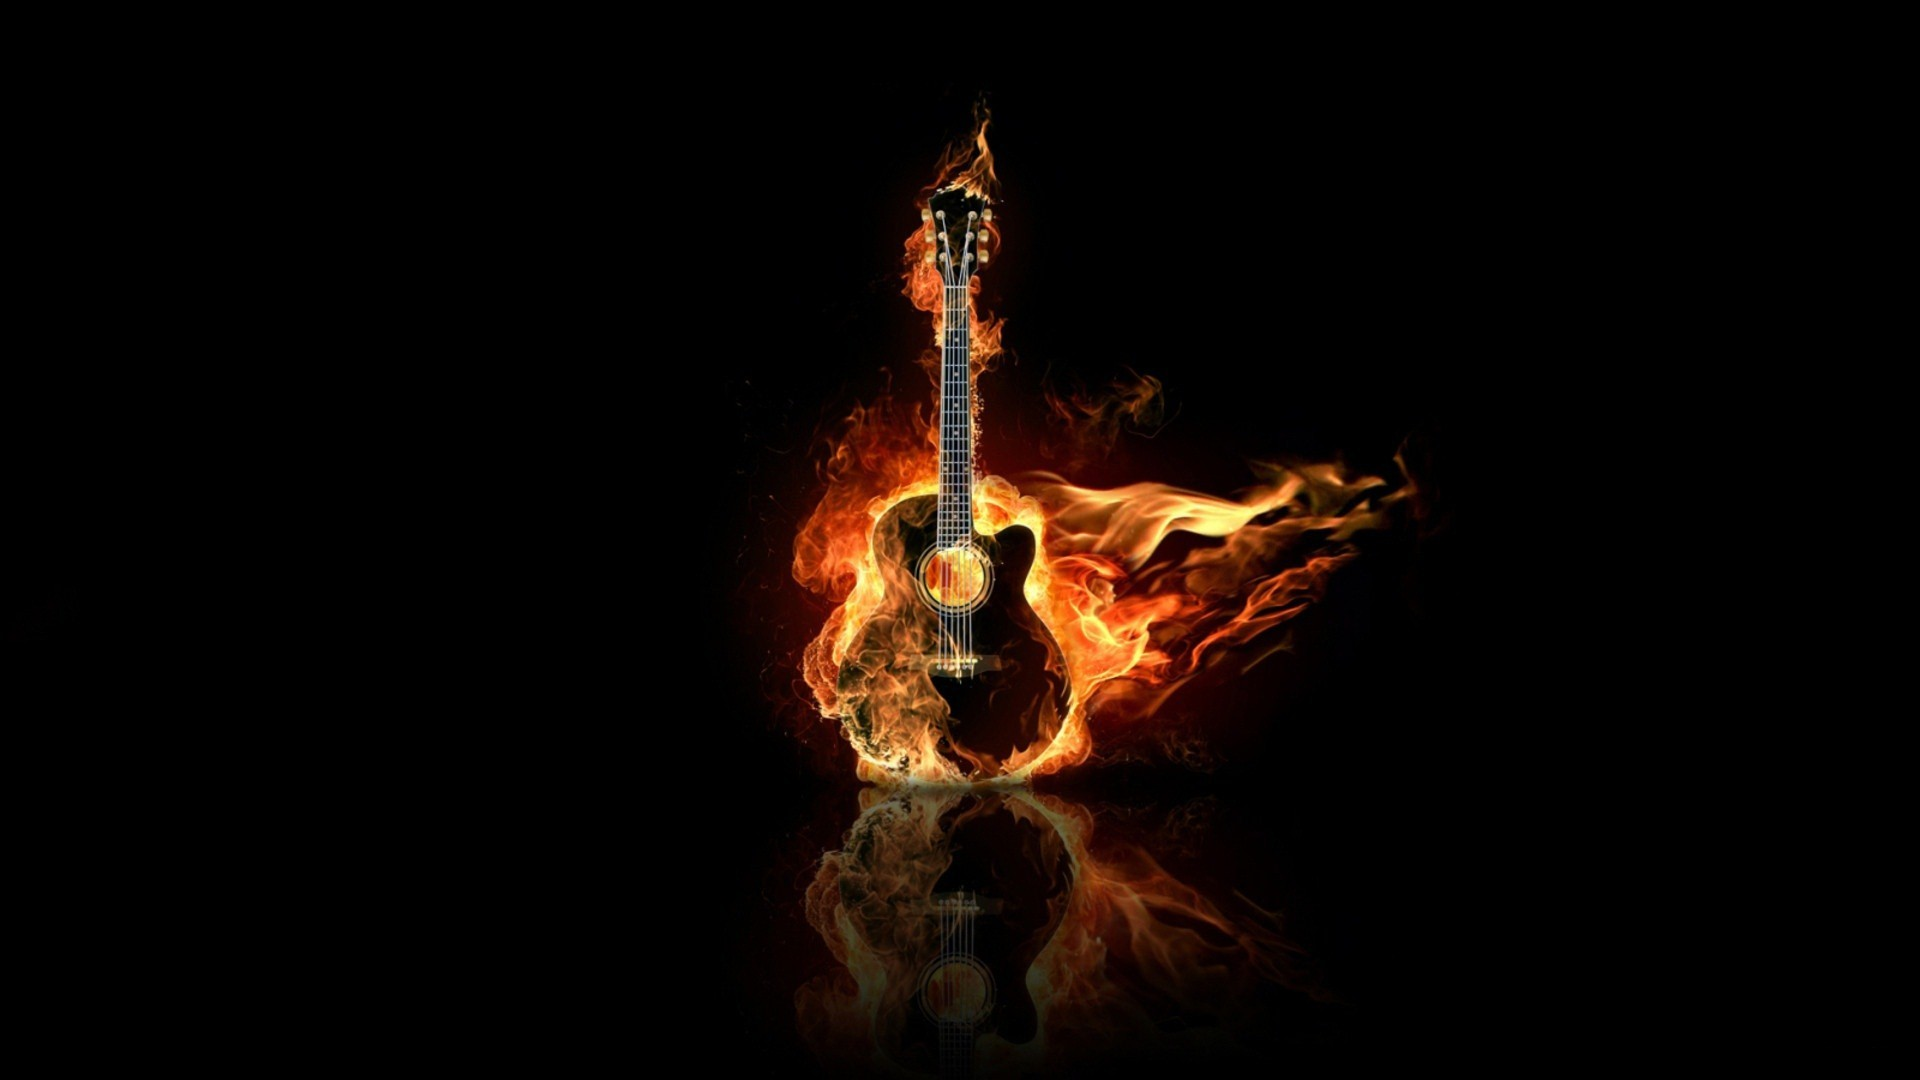 1920x1080 ... acoustic guitar country music high resolution wallpaper ...